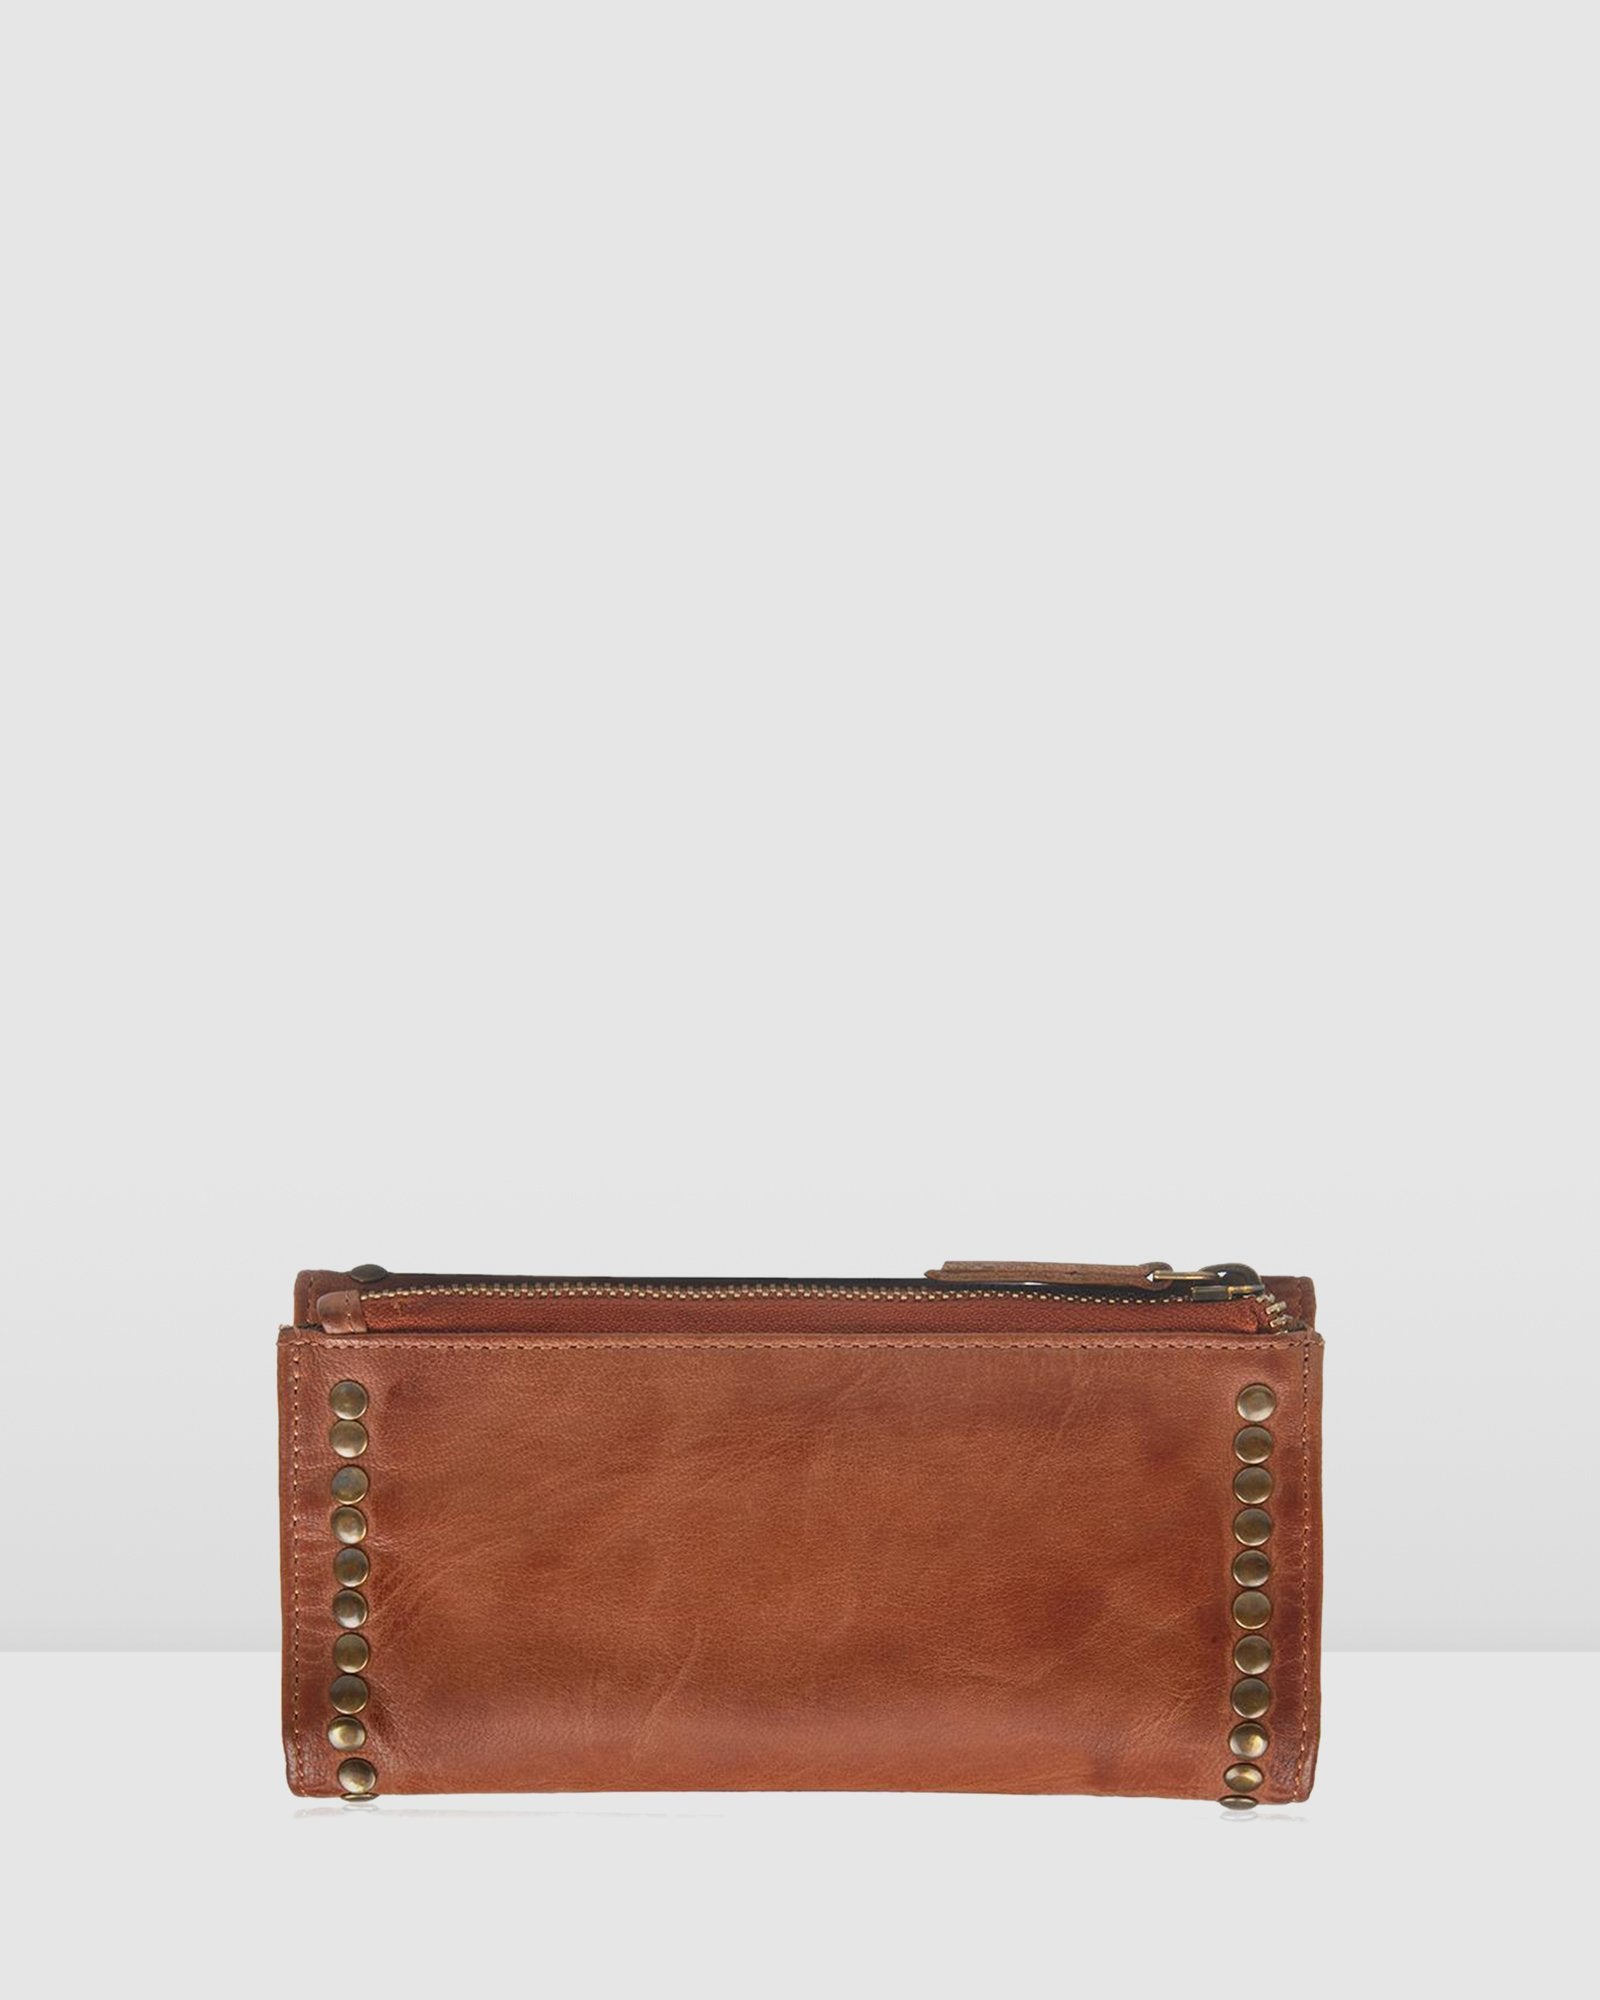 BIBA PORTLAND WALLET TAN LEATHER